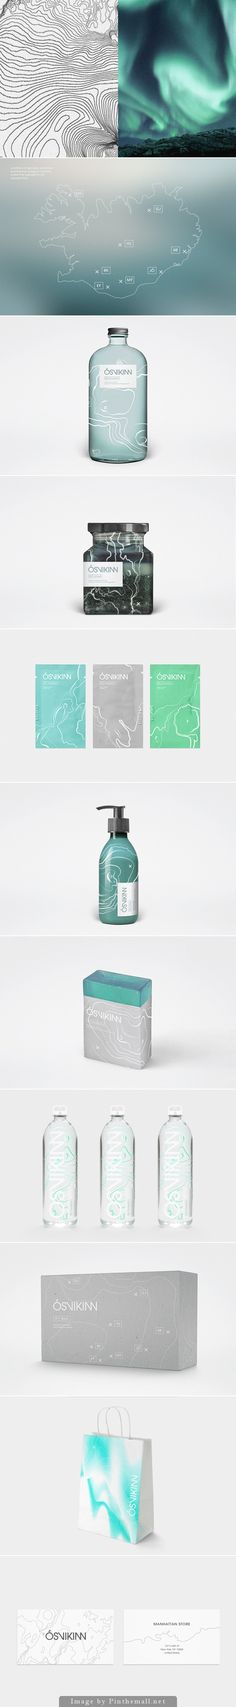 Ósvikinn a beautiful student packaging design and branding concept for a line of natural health and wellness products from Iceland curated by Packaging Diva PD